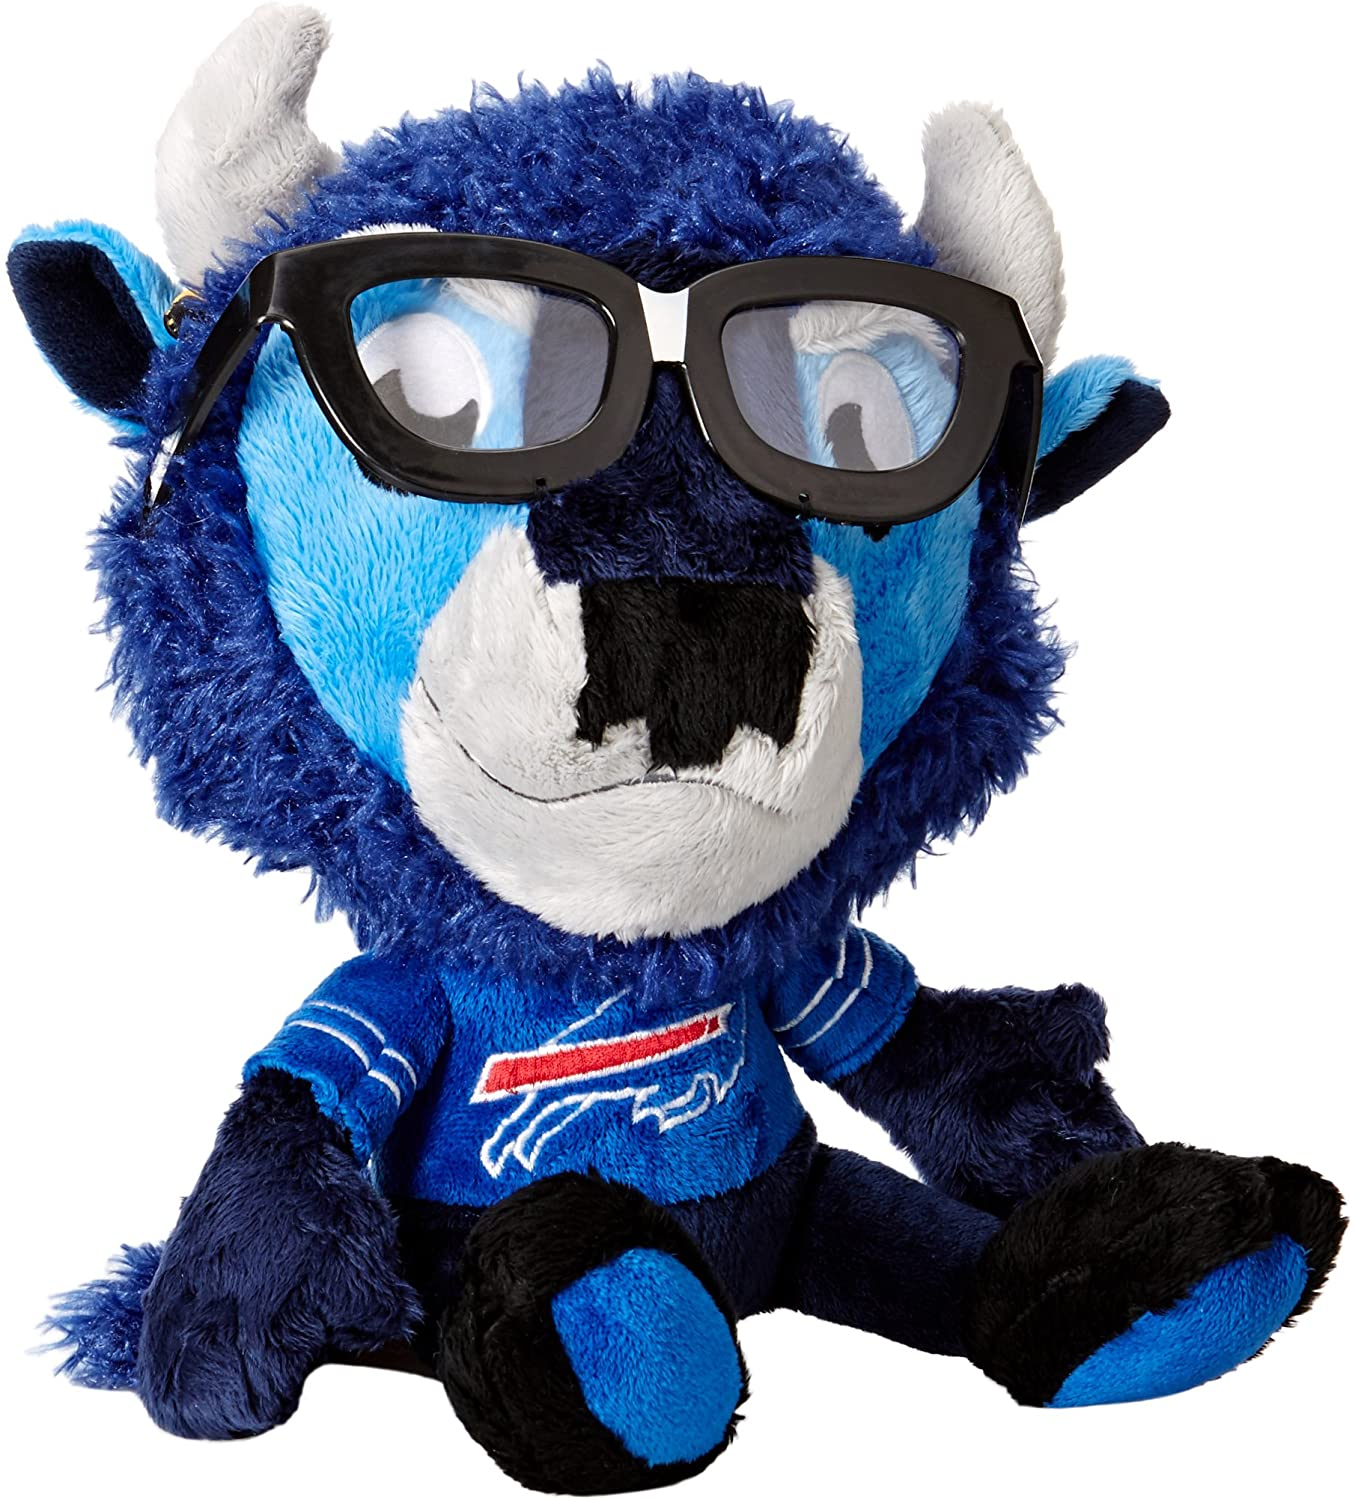 Fabrique Innovations NFL Study Buddy Mascot Plush Toy, Buffalo Bills